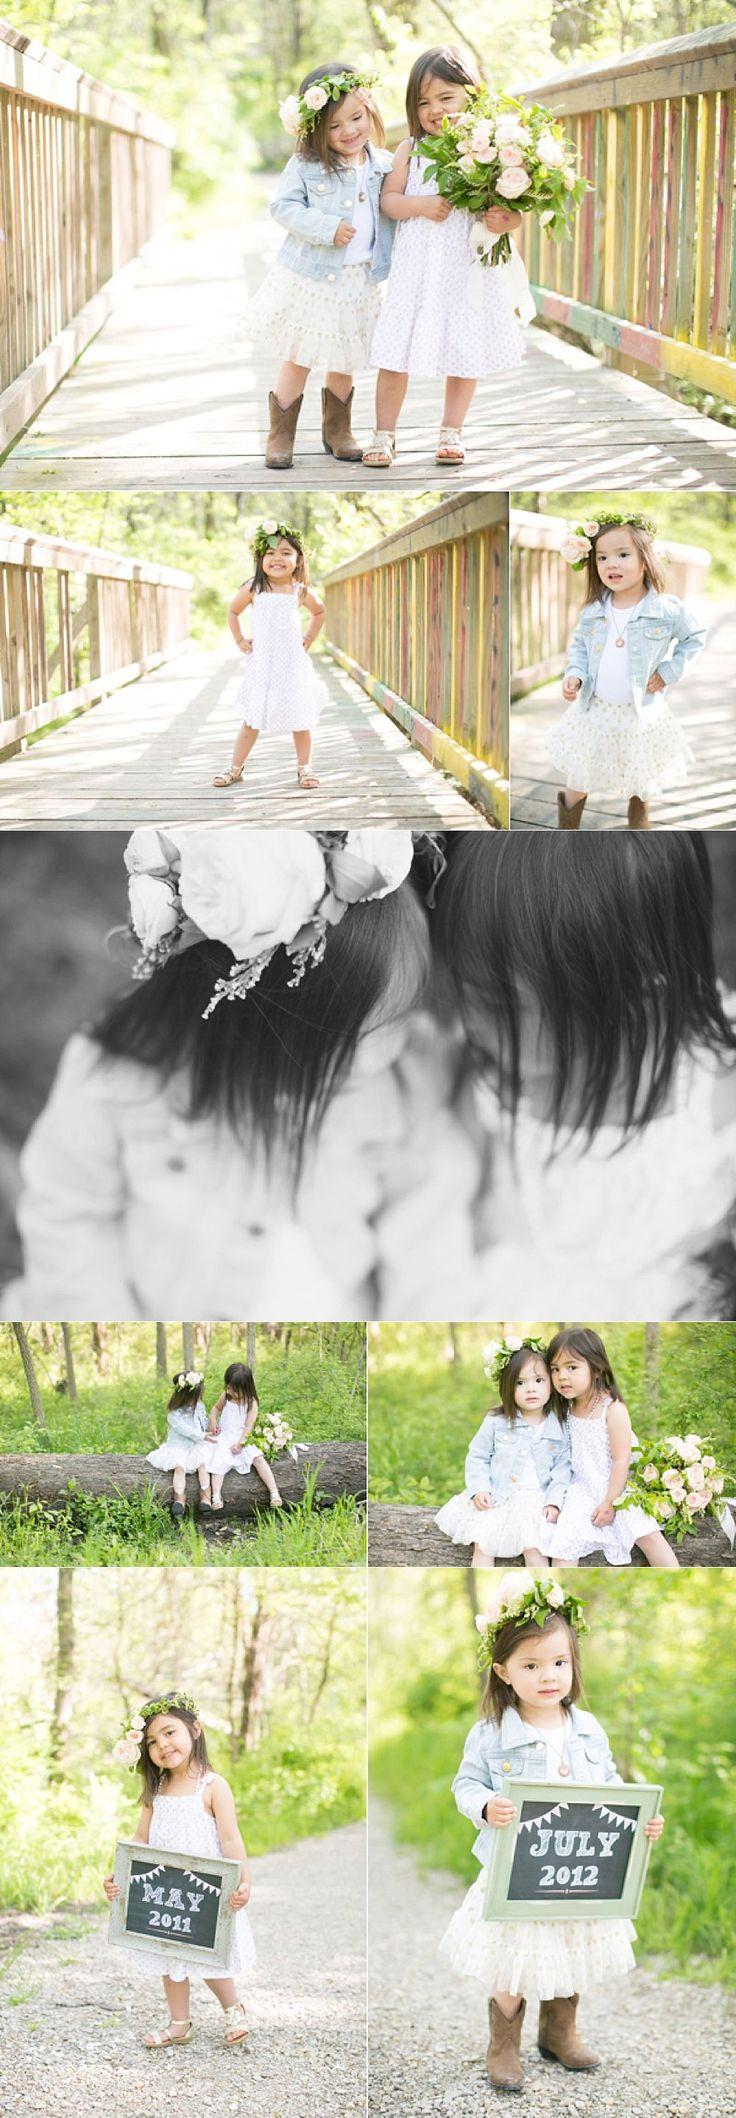 Little sisters photography portrait session together. Super cute with hair floral wreaths.